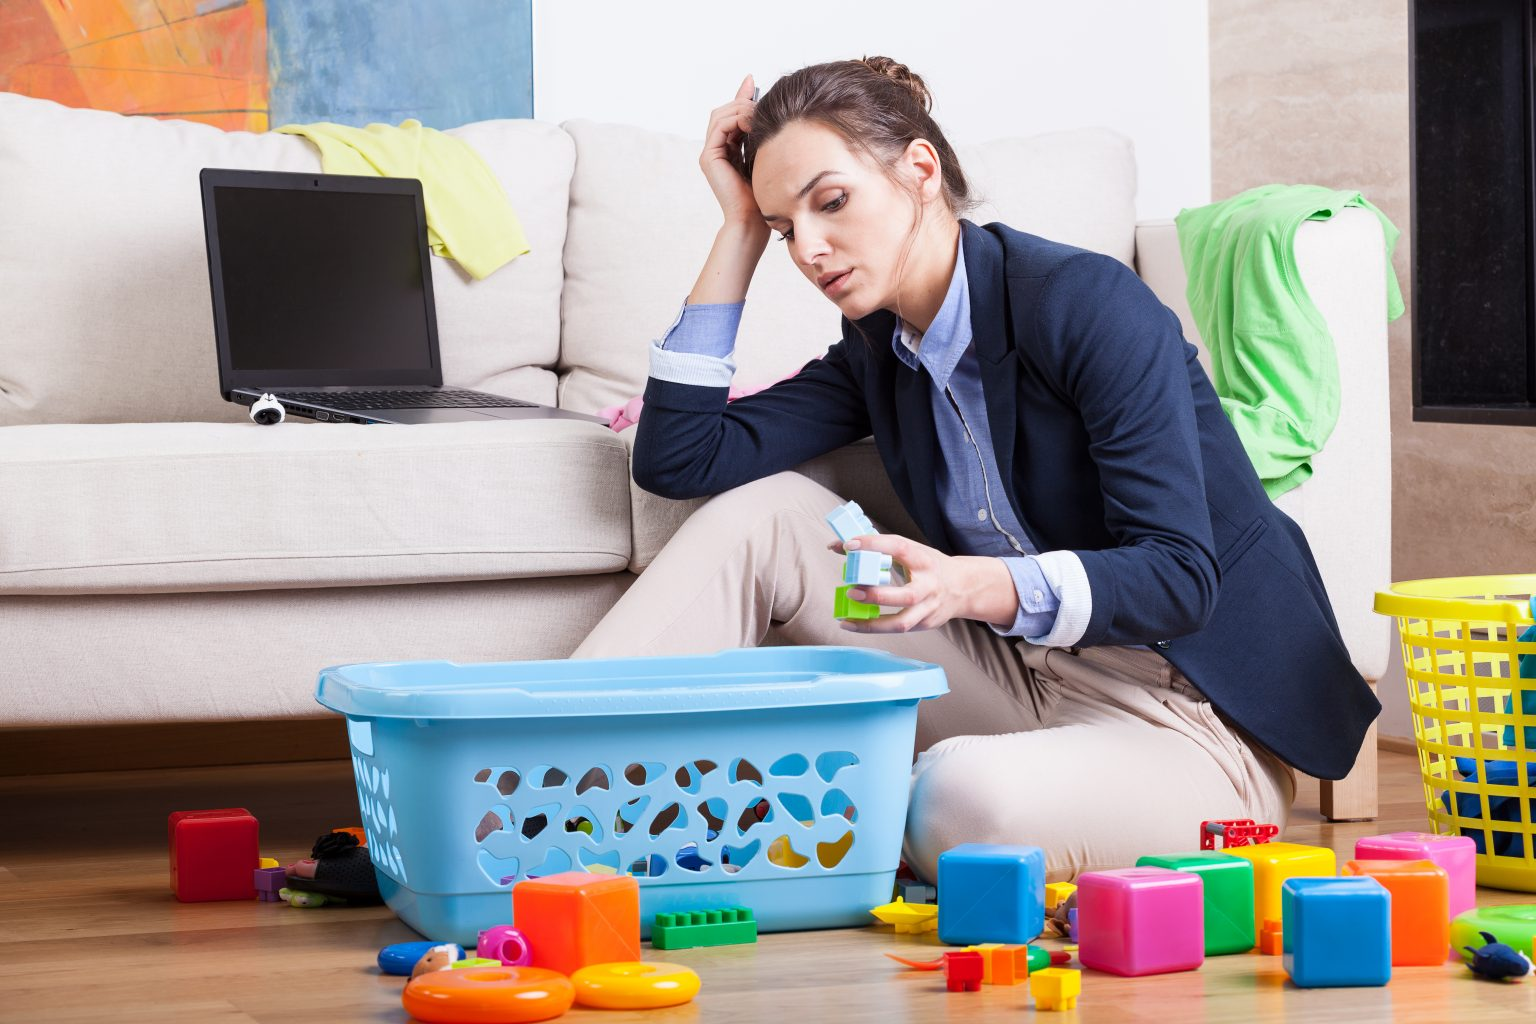 Woman, Overwhelmed, House, Toys, Maintenance